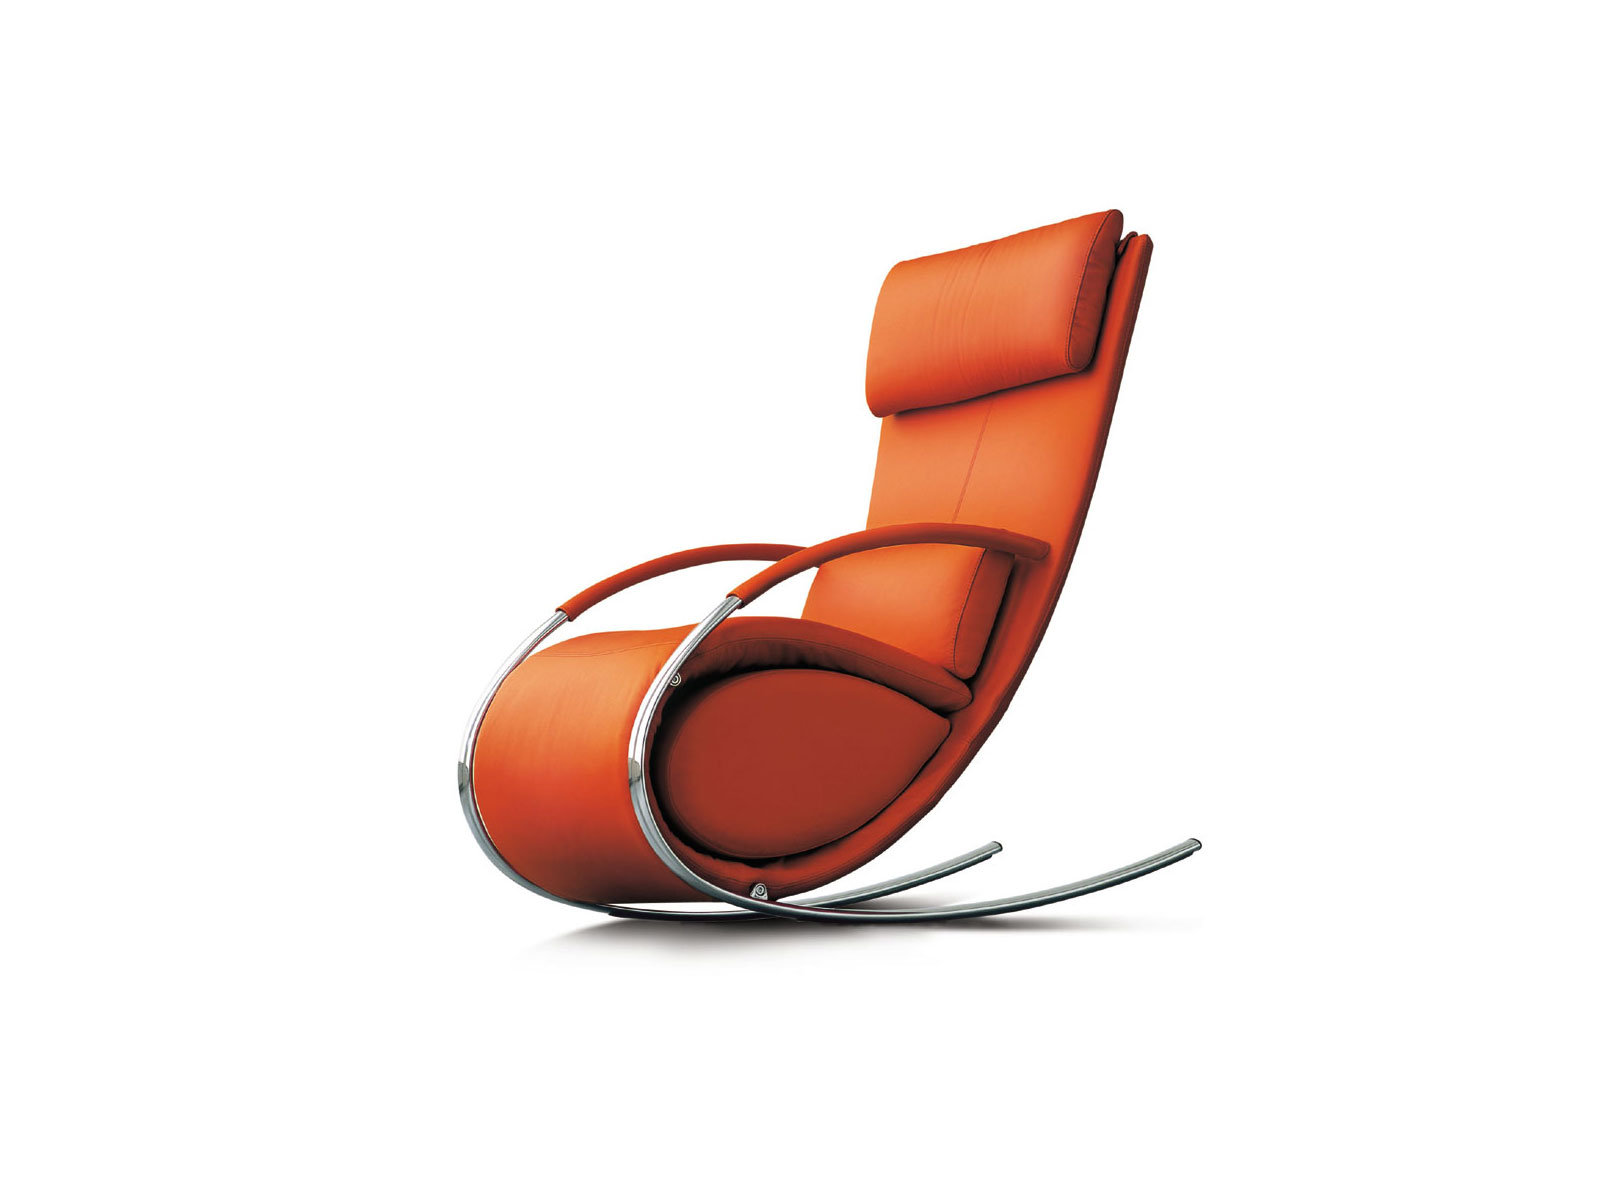 PageLines- furniture-modern-chair-designs-that-modern-rocking-chair-with-the-top-of-the-foam-wrapped-leather-colored-orange-and-have-a-curved-legs-from-iron-modern-armchair-design-ideas.jpg